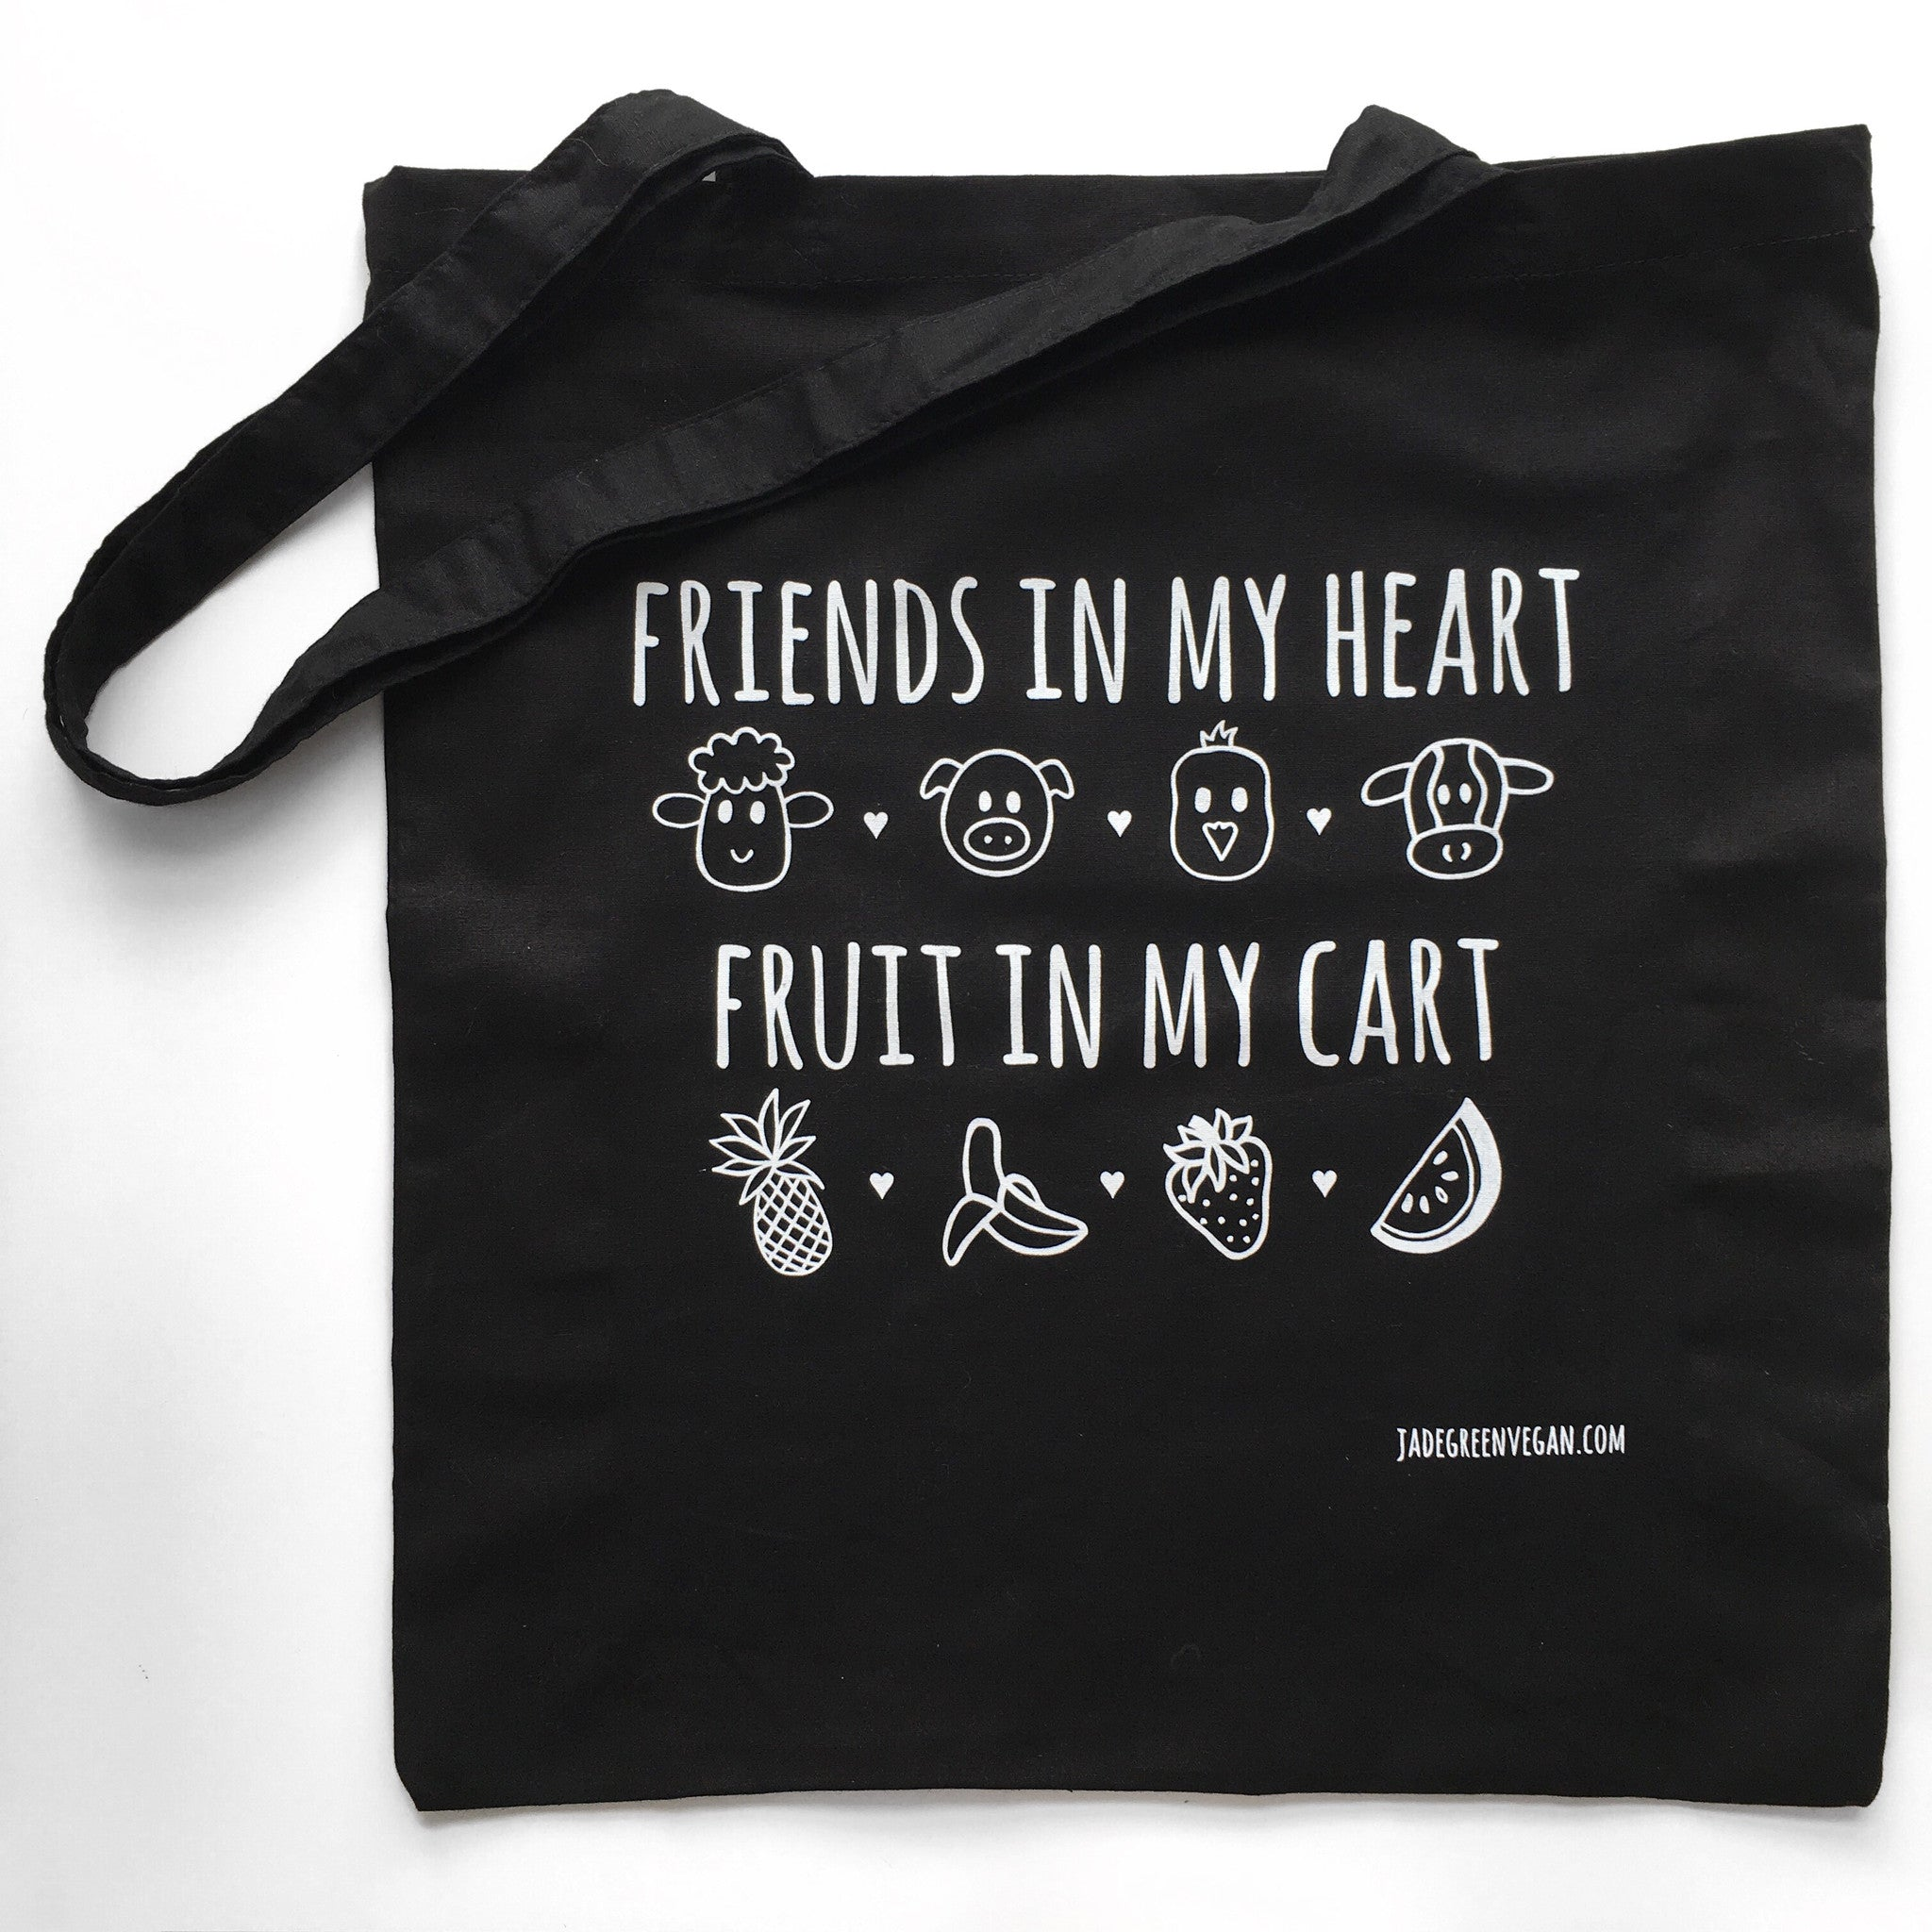 FRIENDS IN MY HEART FRUIT IN MY CART Black Tote Bag